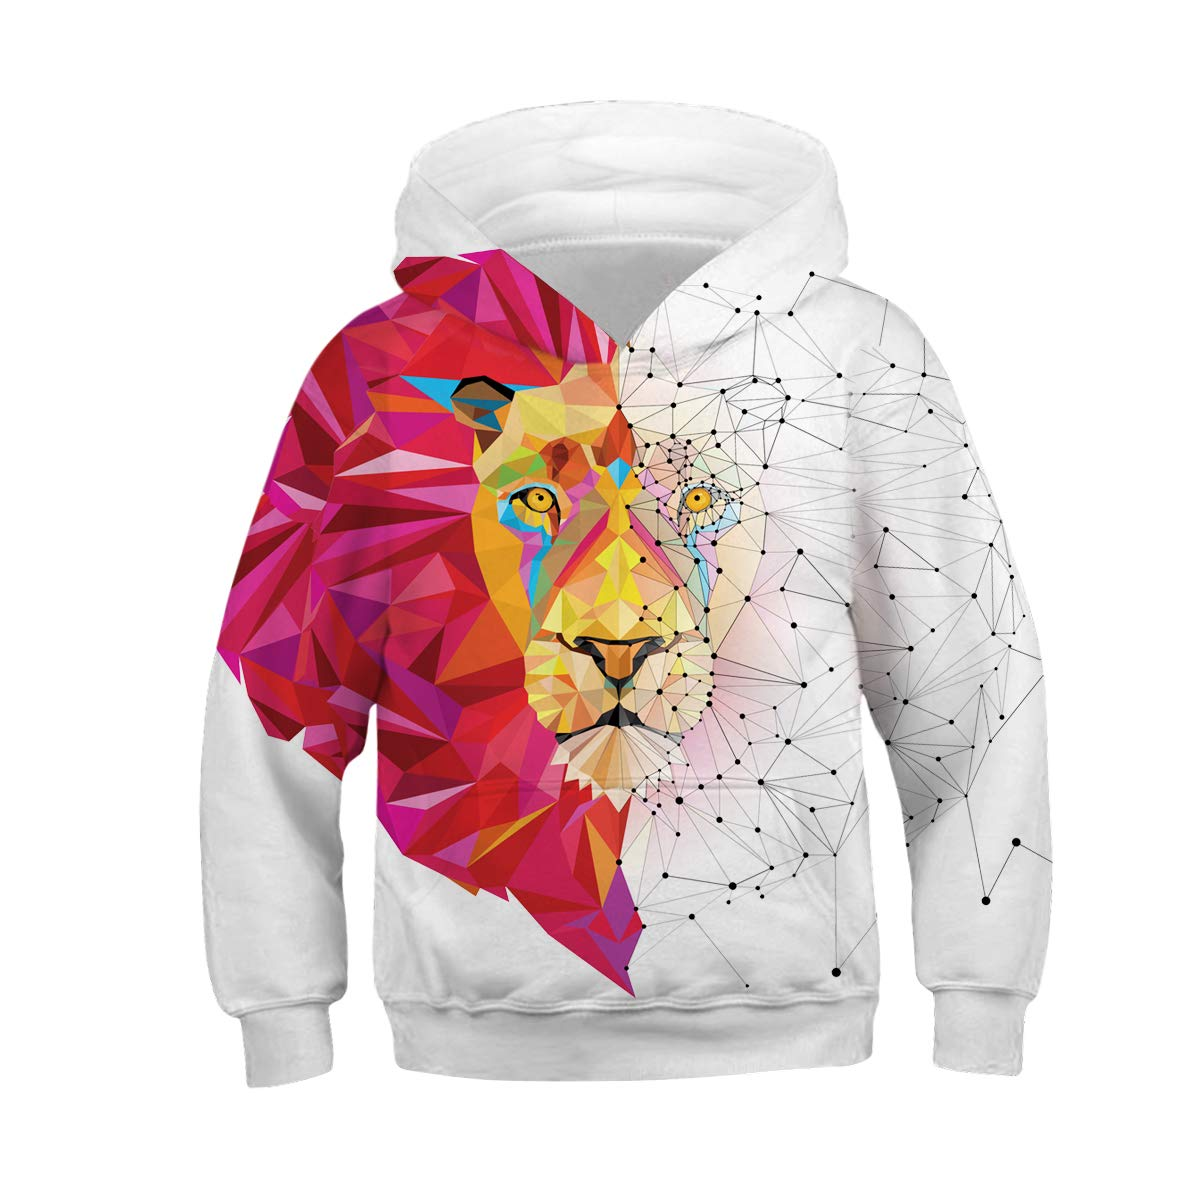 URVIP 3-13 Years Unisex Kids Hoodies Sweatshirt 3D Print Pullover Clothes UVYDE1811A5